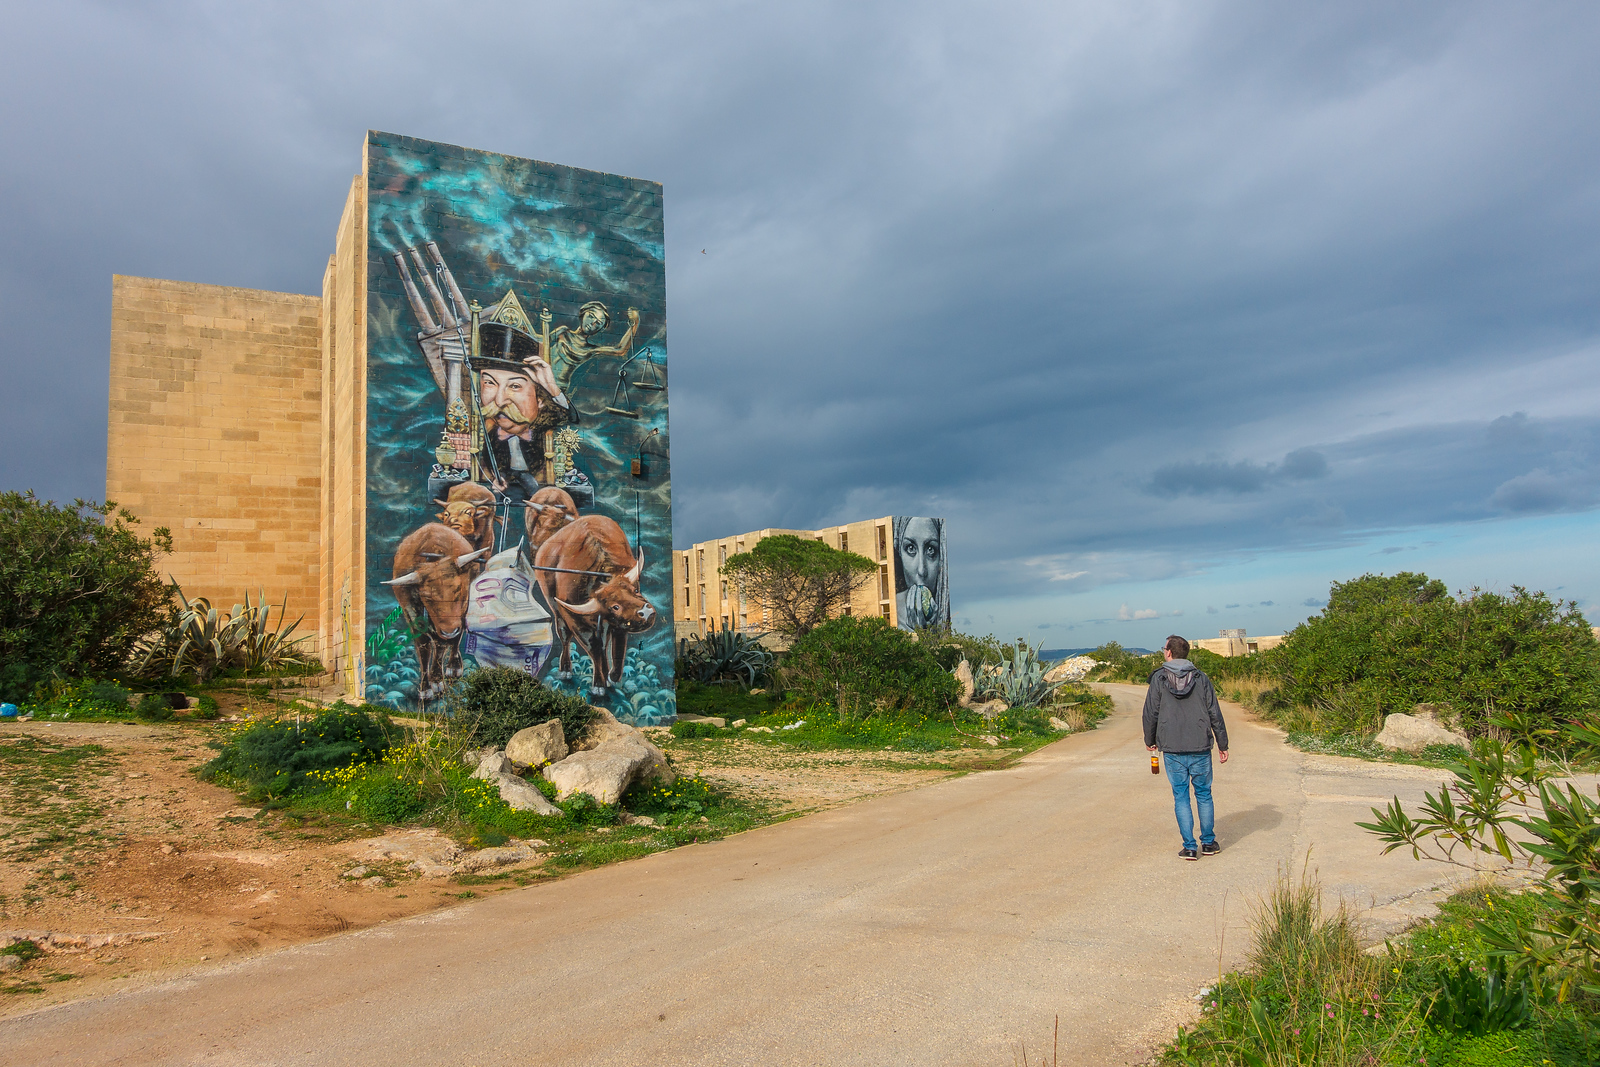 Quirky and Unique Things to Do in Malta - Street Art in Pembroke